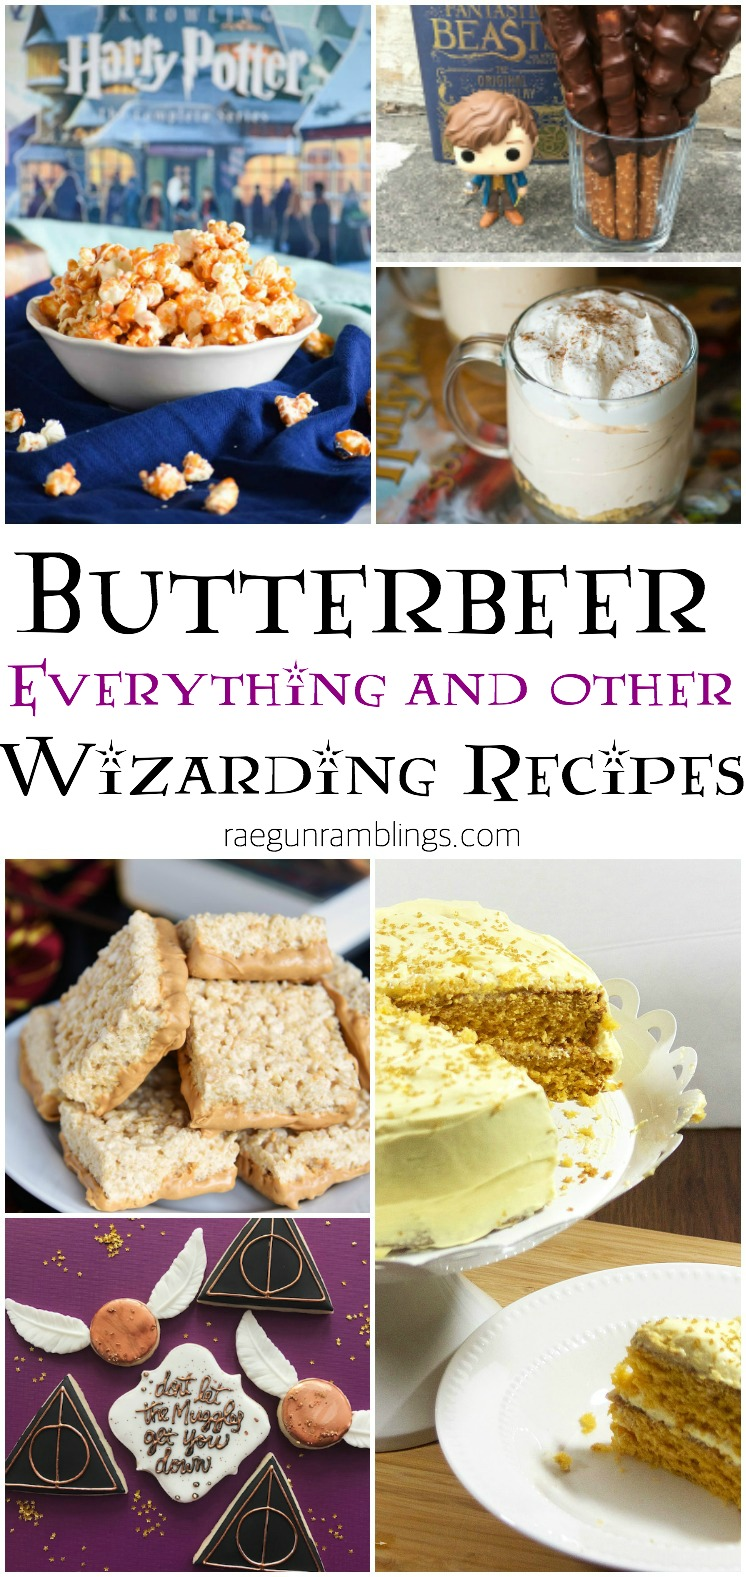 butterbeer inspired recipes and other harry potter desserts and treats